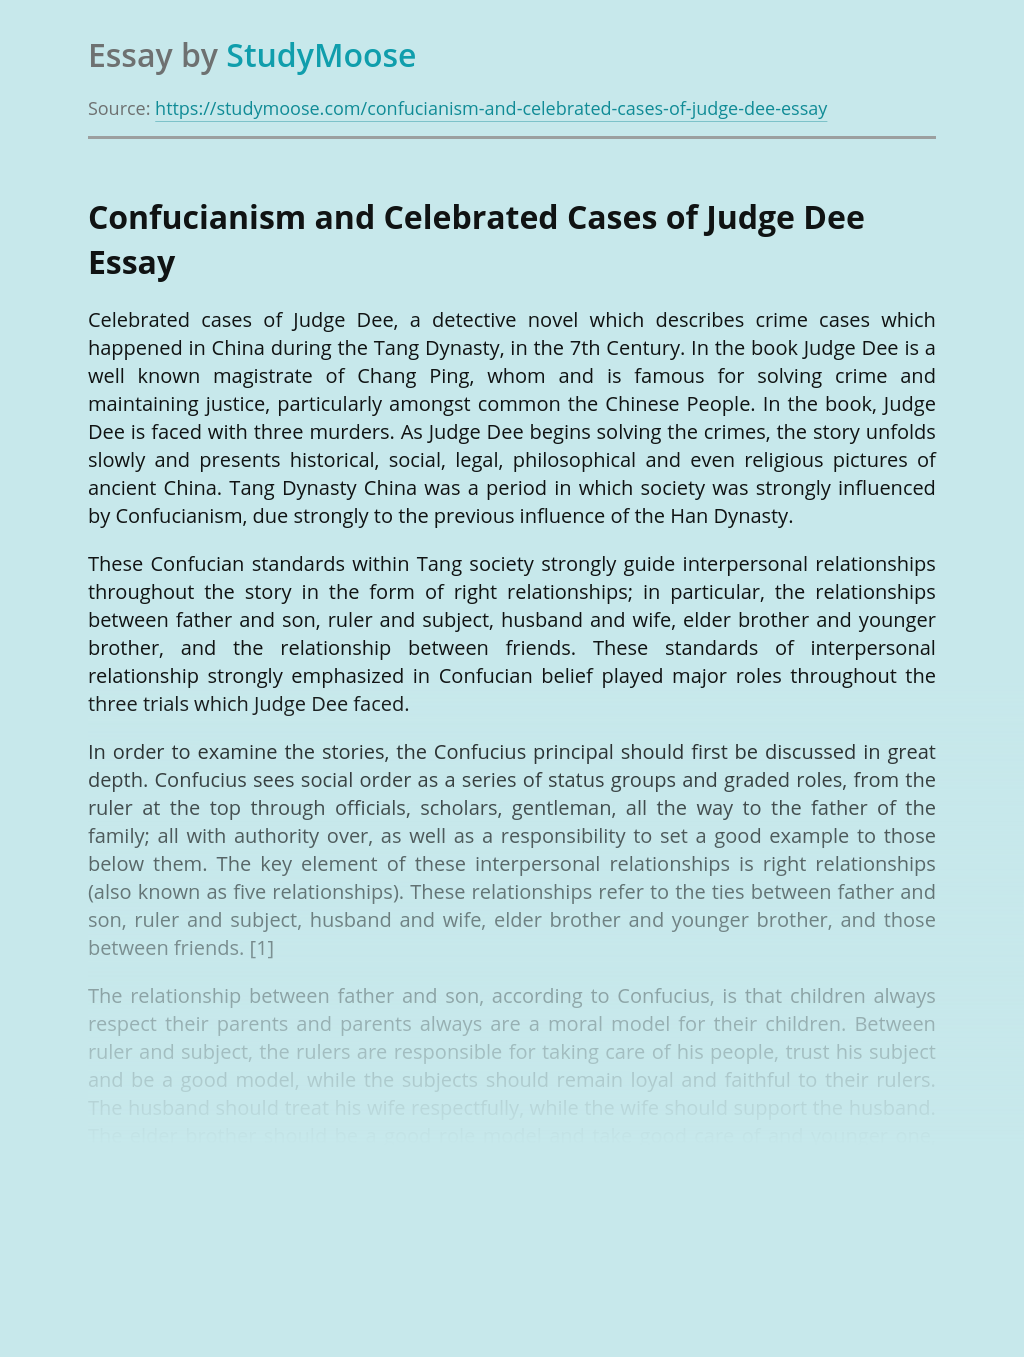 Confucianism and Celebrated Cases of Judge Dee